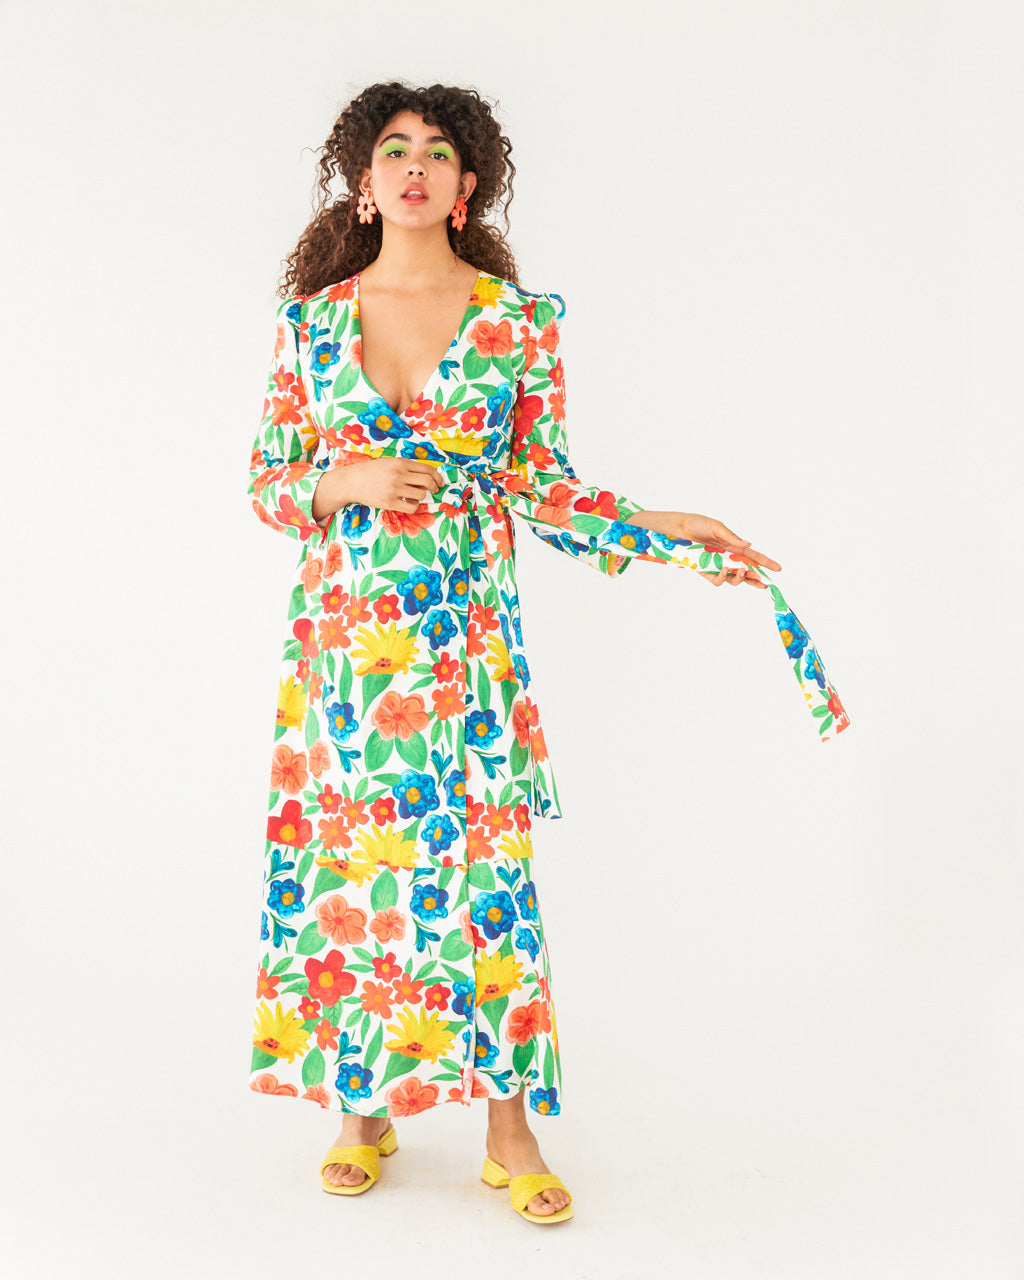 model wearing a bright large floral pattern maxi dress with a bright yellow sandal